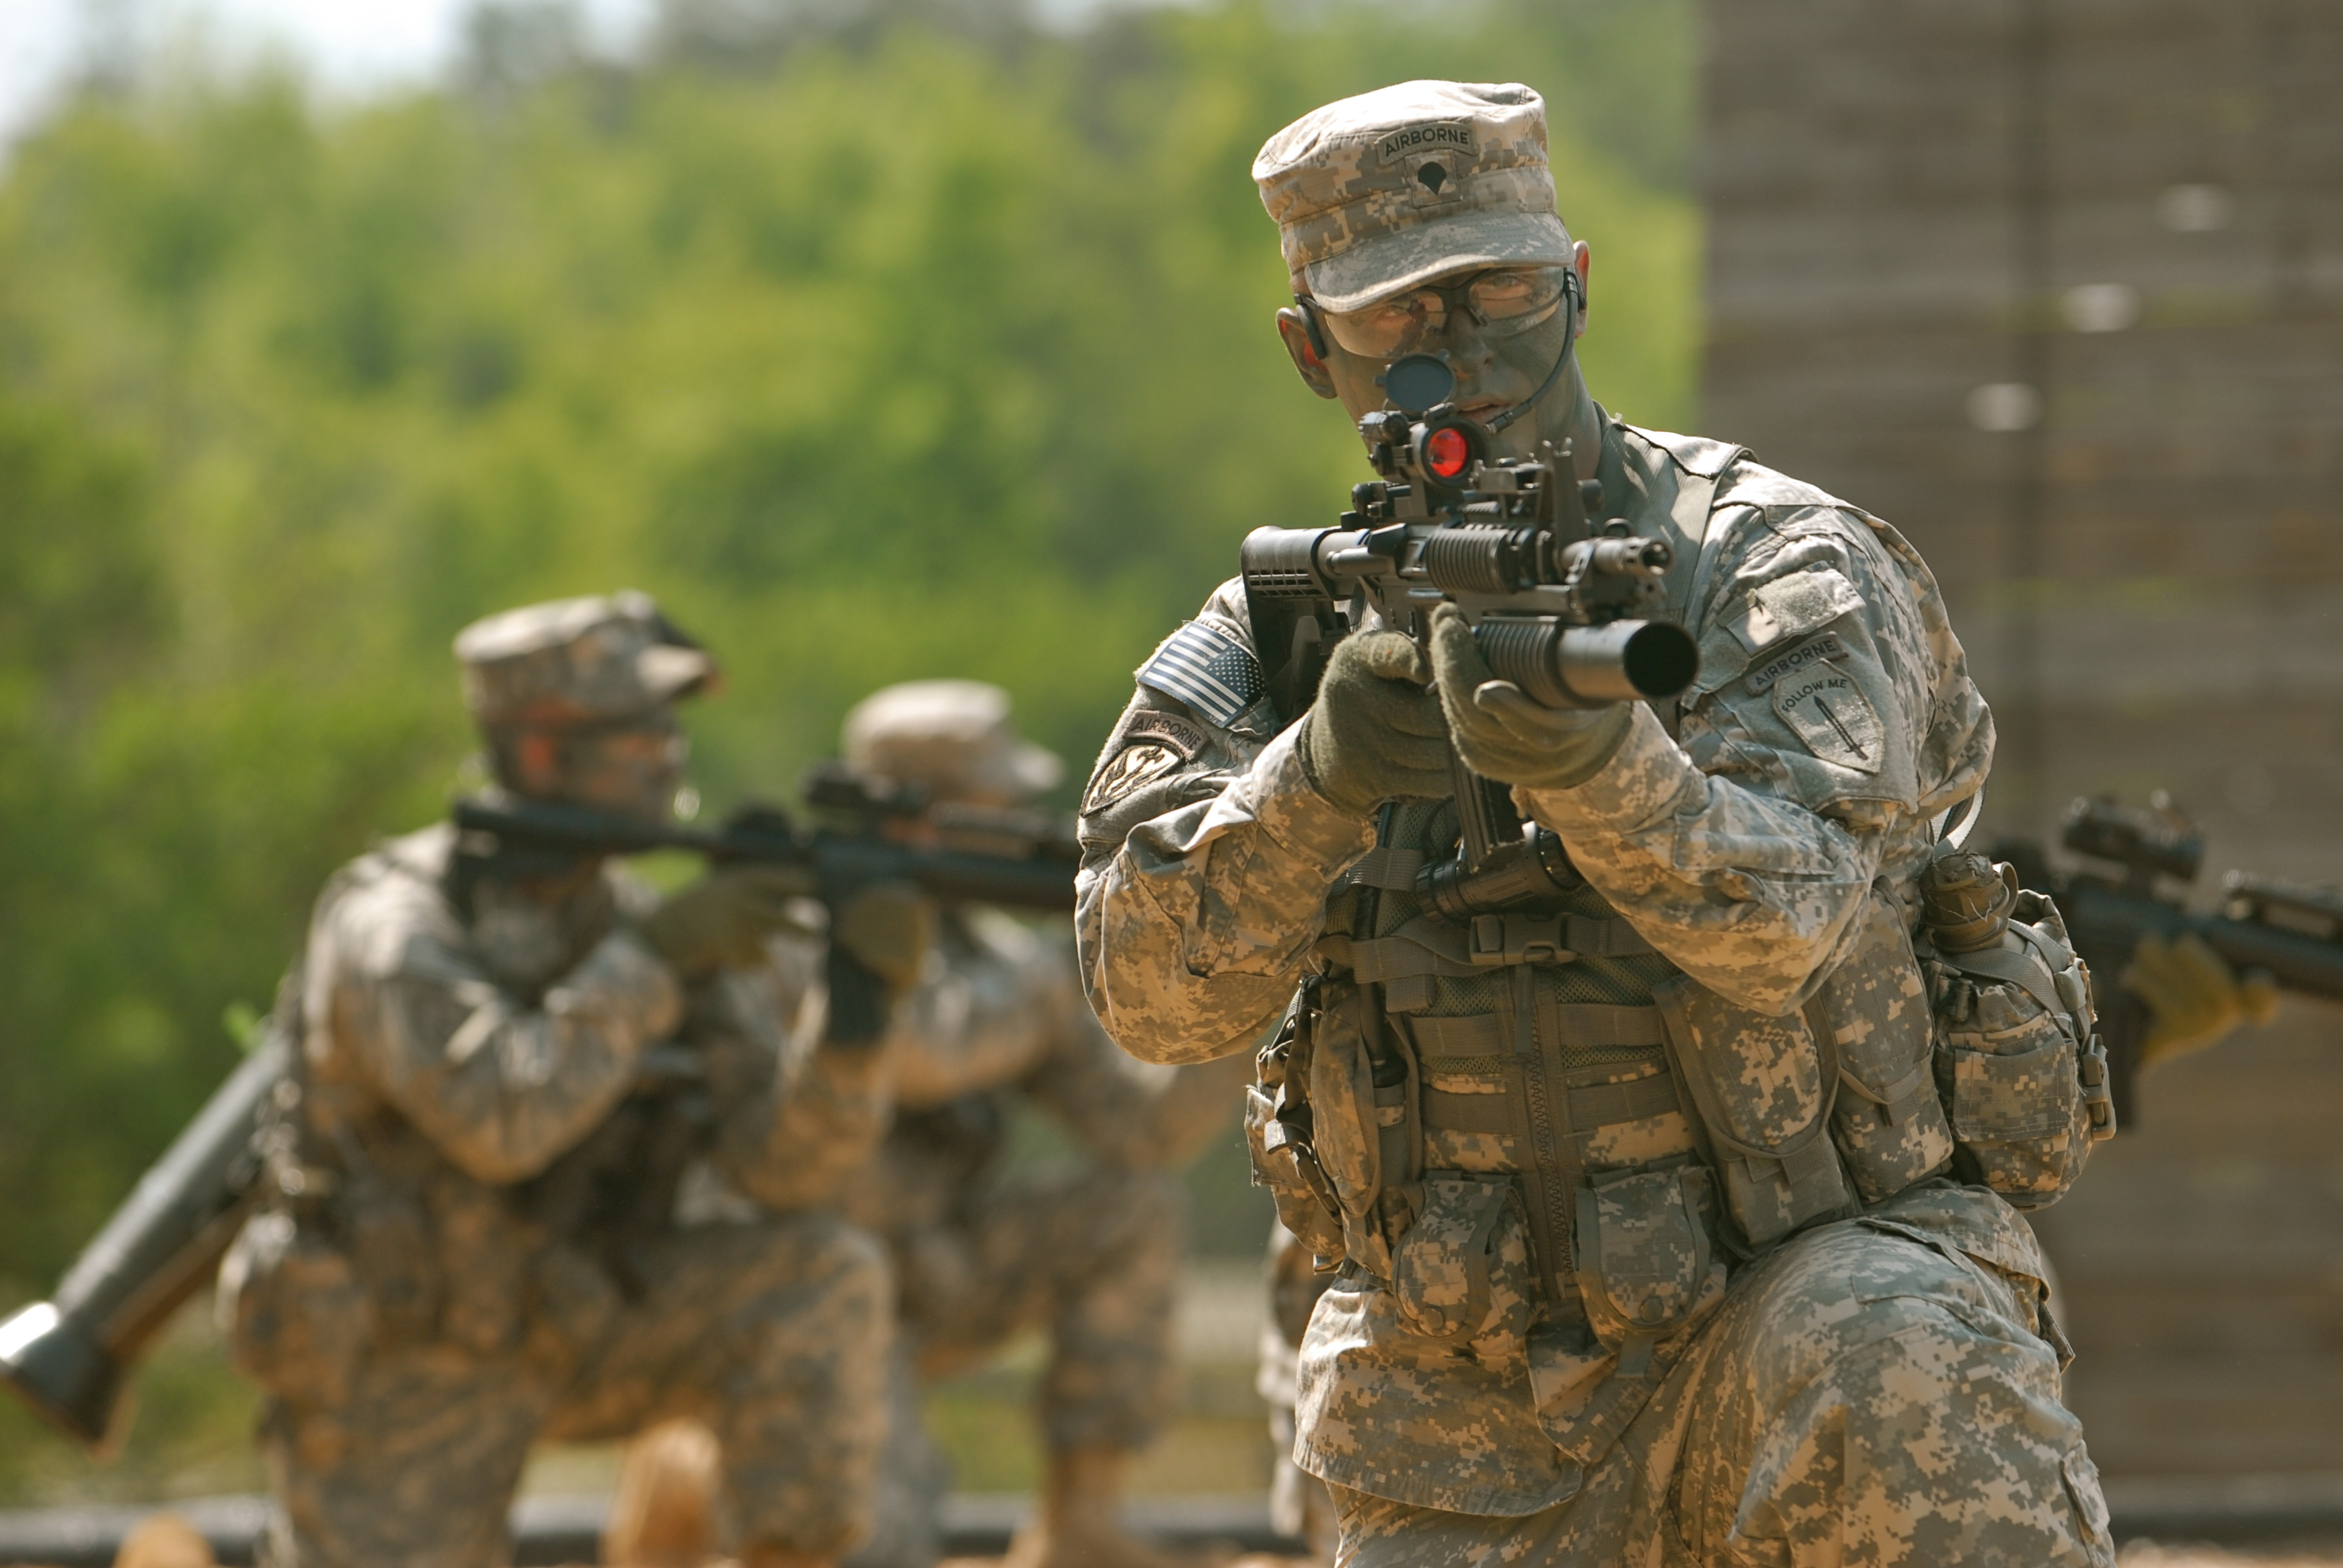 50 United States Army Rangers Wallpaper On Wallpapersafari